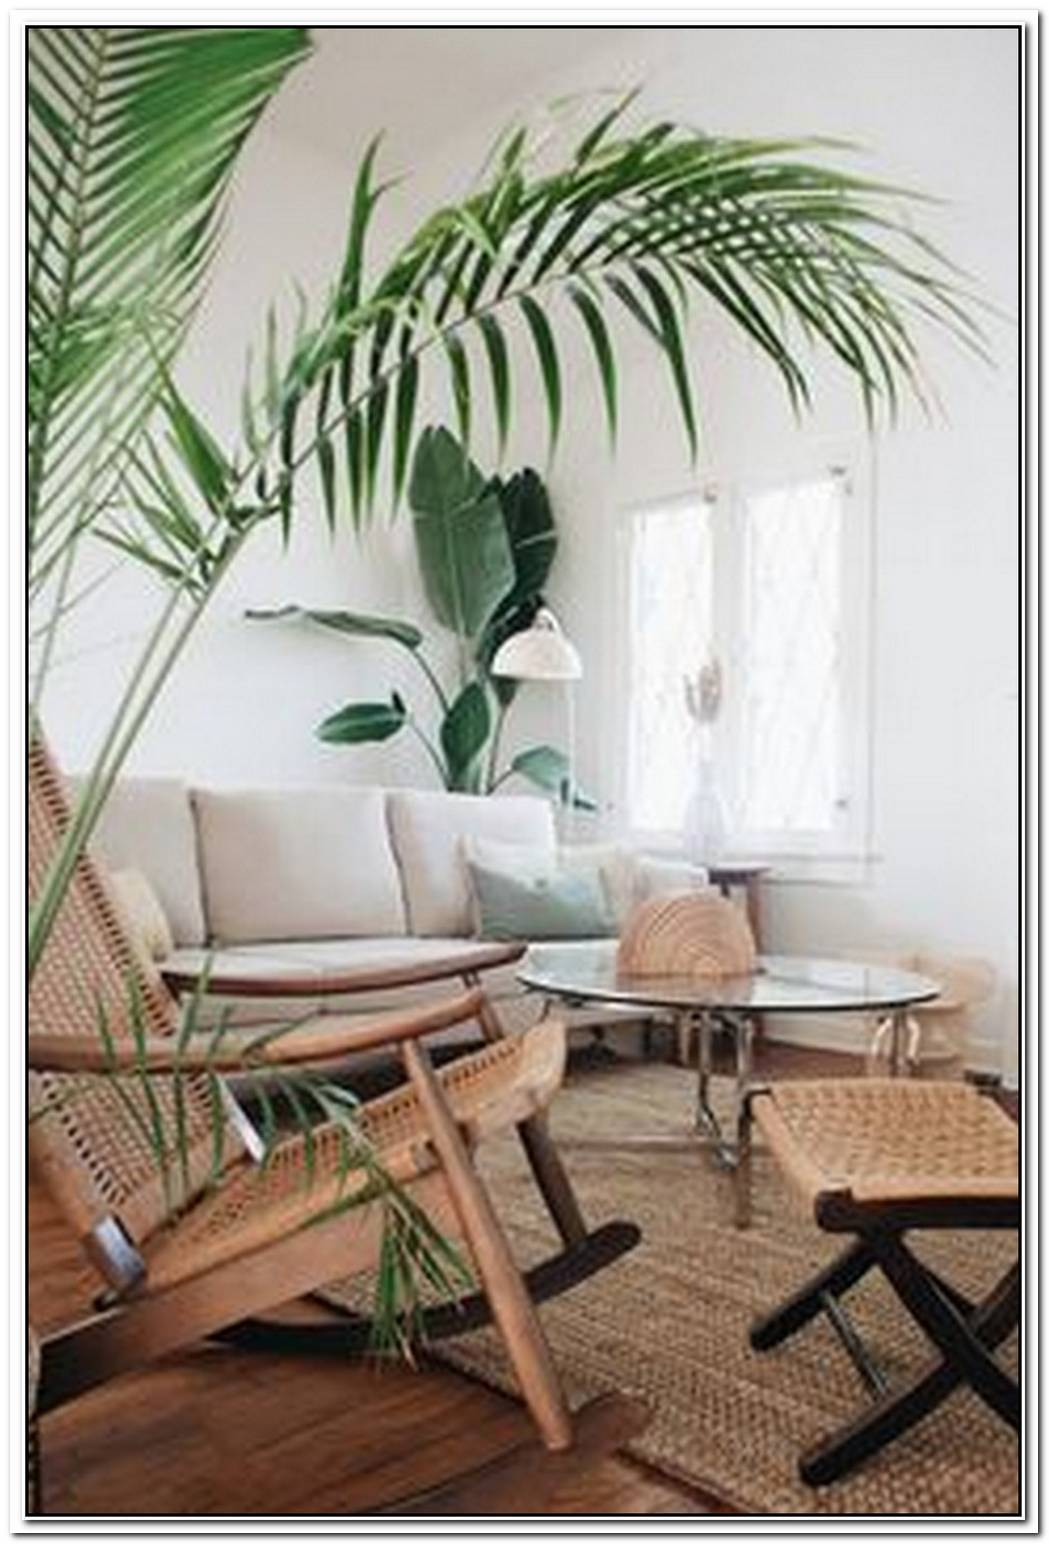 11 Tropical Living Room Ideas That Will Drive You Wild